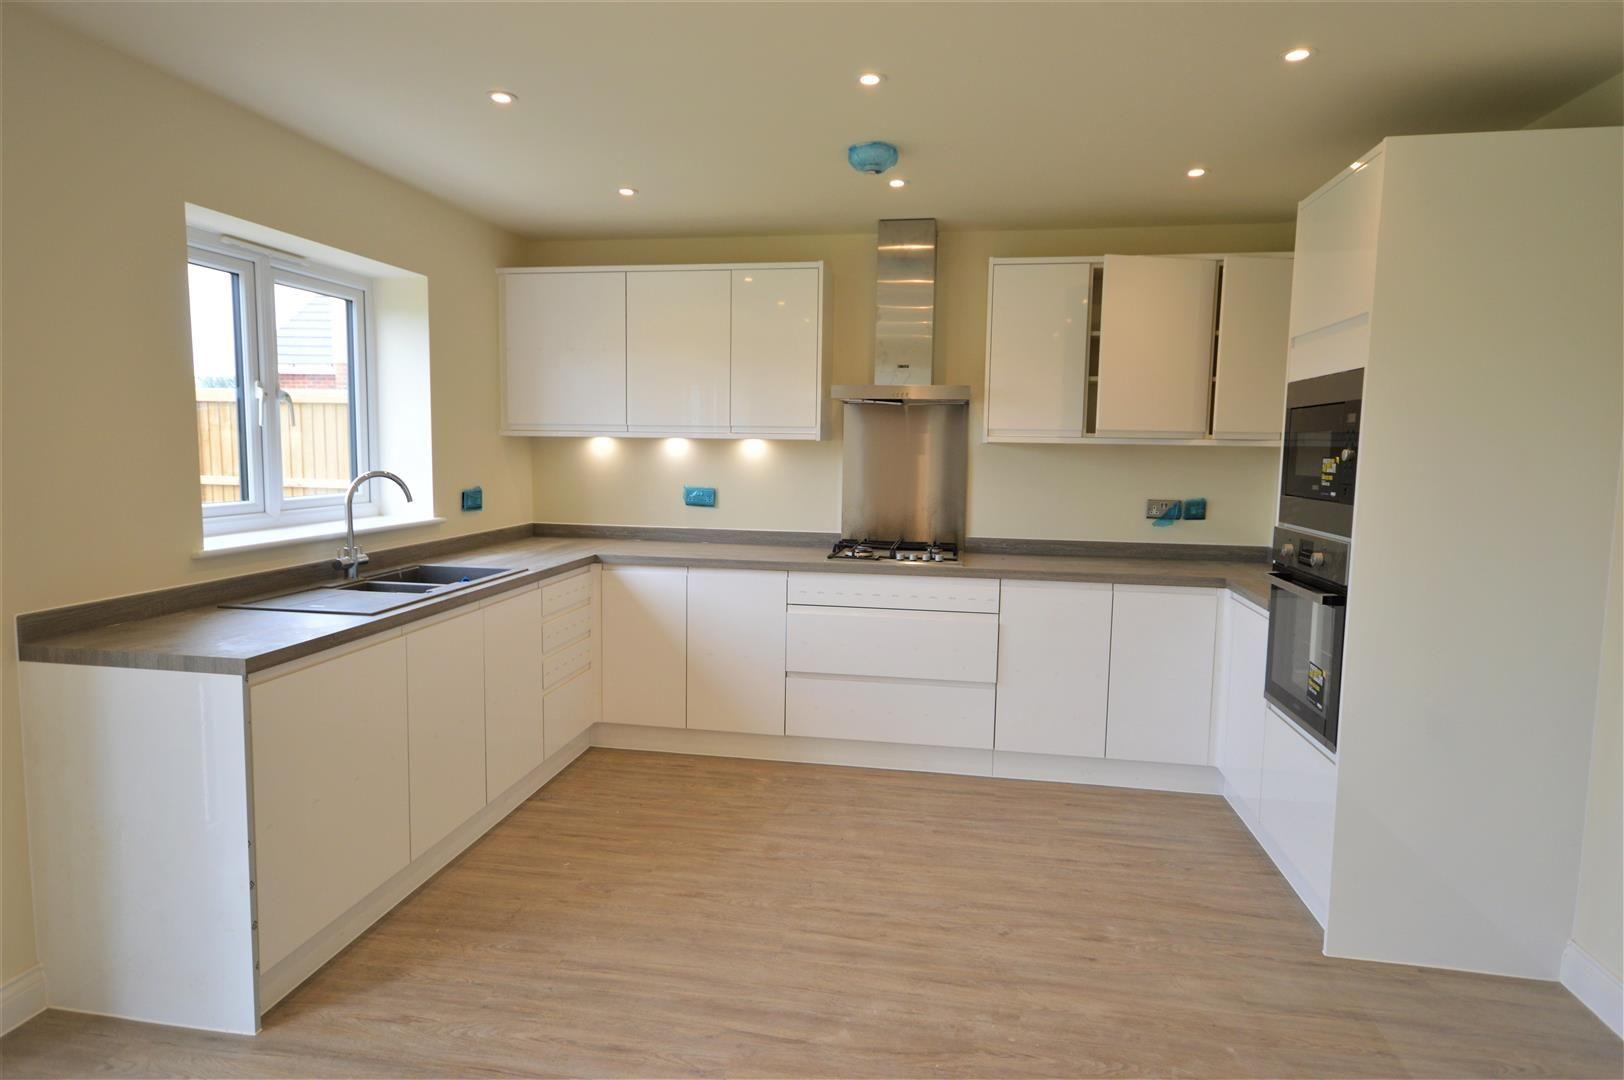 4 bed detached for sale in Kingsland  - Property Image 2